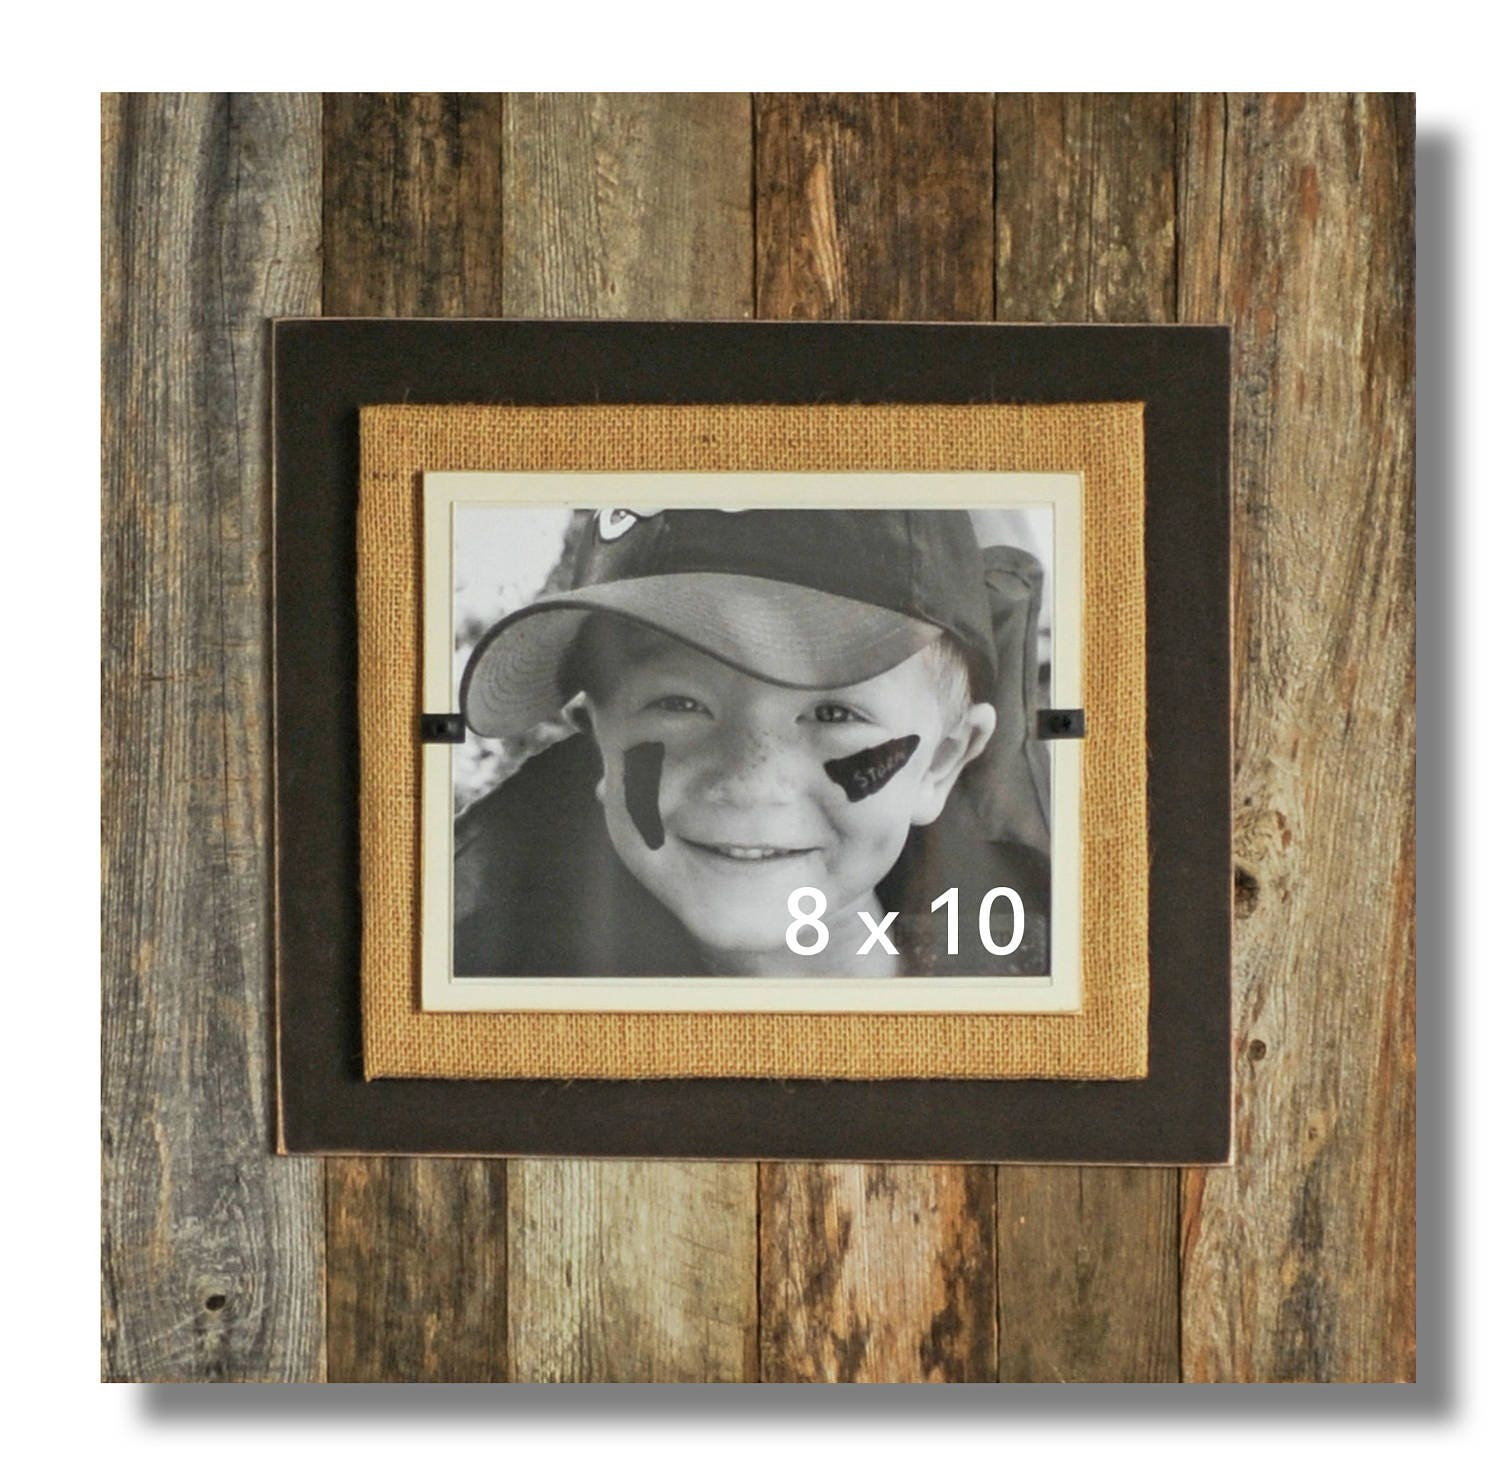 Reclaimed wood picture frame 8 x 10 4 x 6 5 x 7 wood picture 3900 jeuxipadfo Images